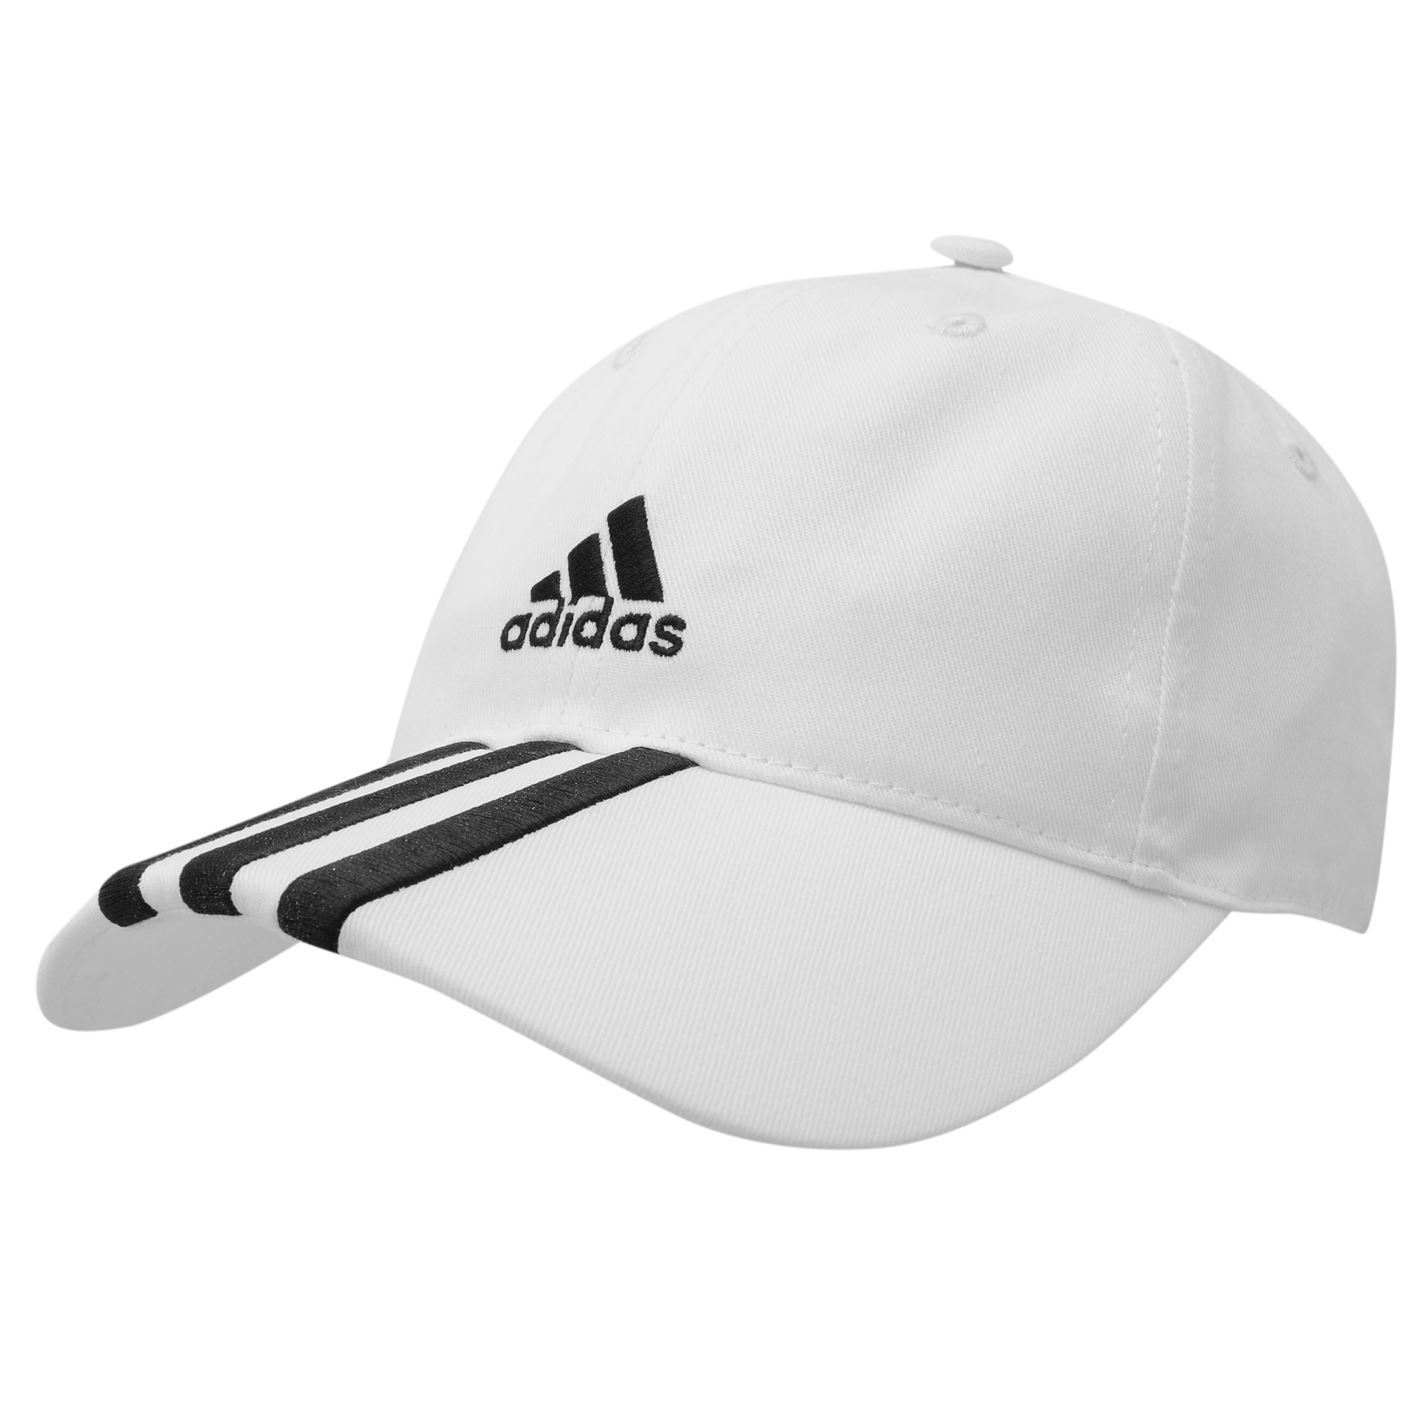 Adidas Cap For Kids giftedoriginals.co.uk d555f42dcb4